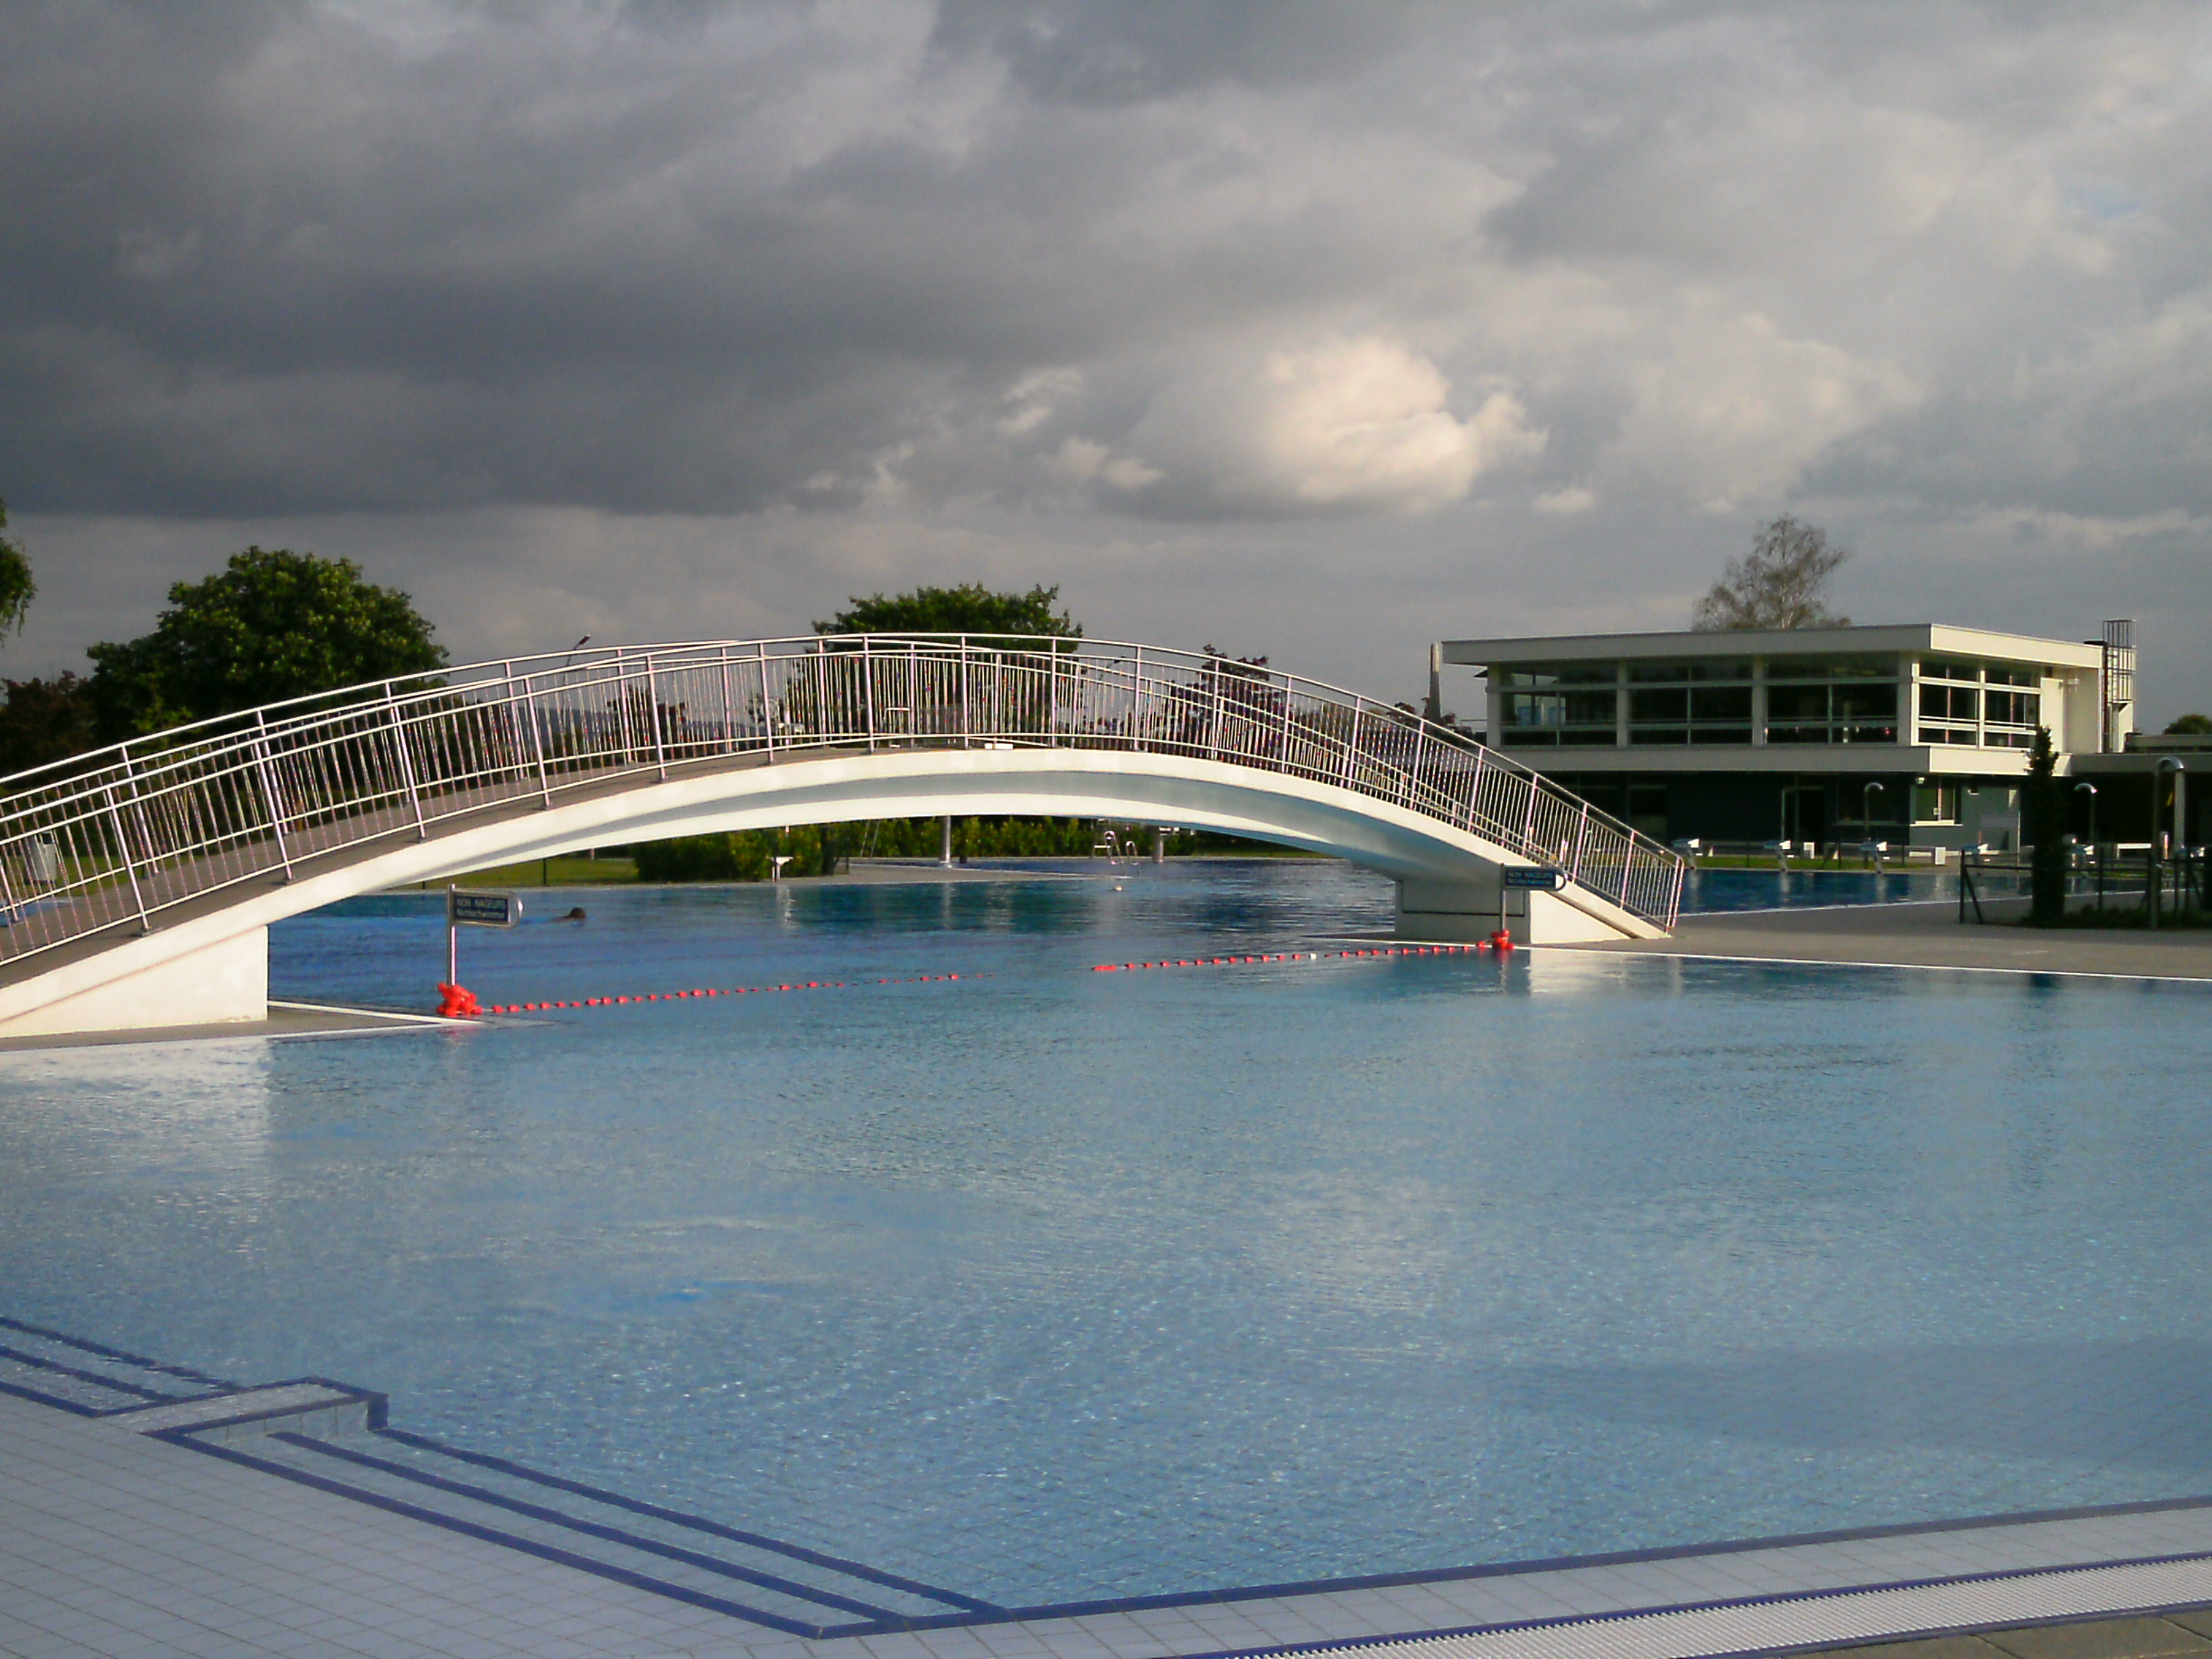 Natation vasion piscine en plein air r mich luxembourg for Piscine luxembourg